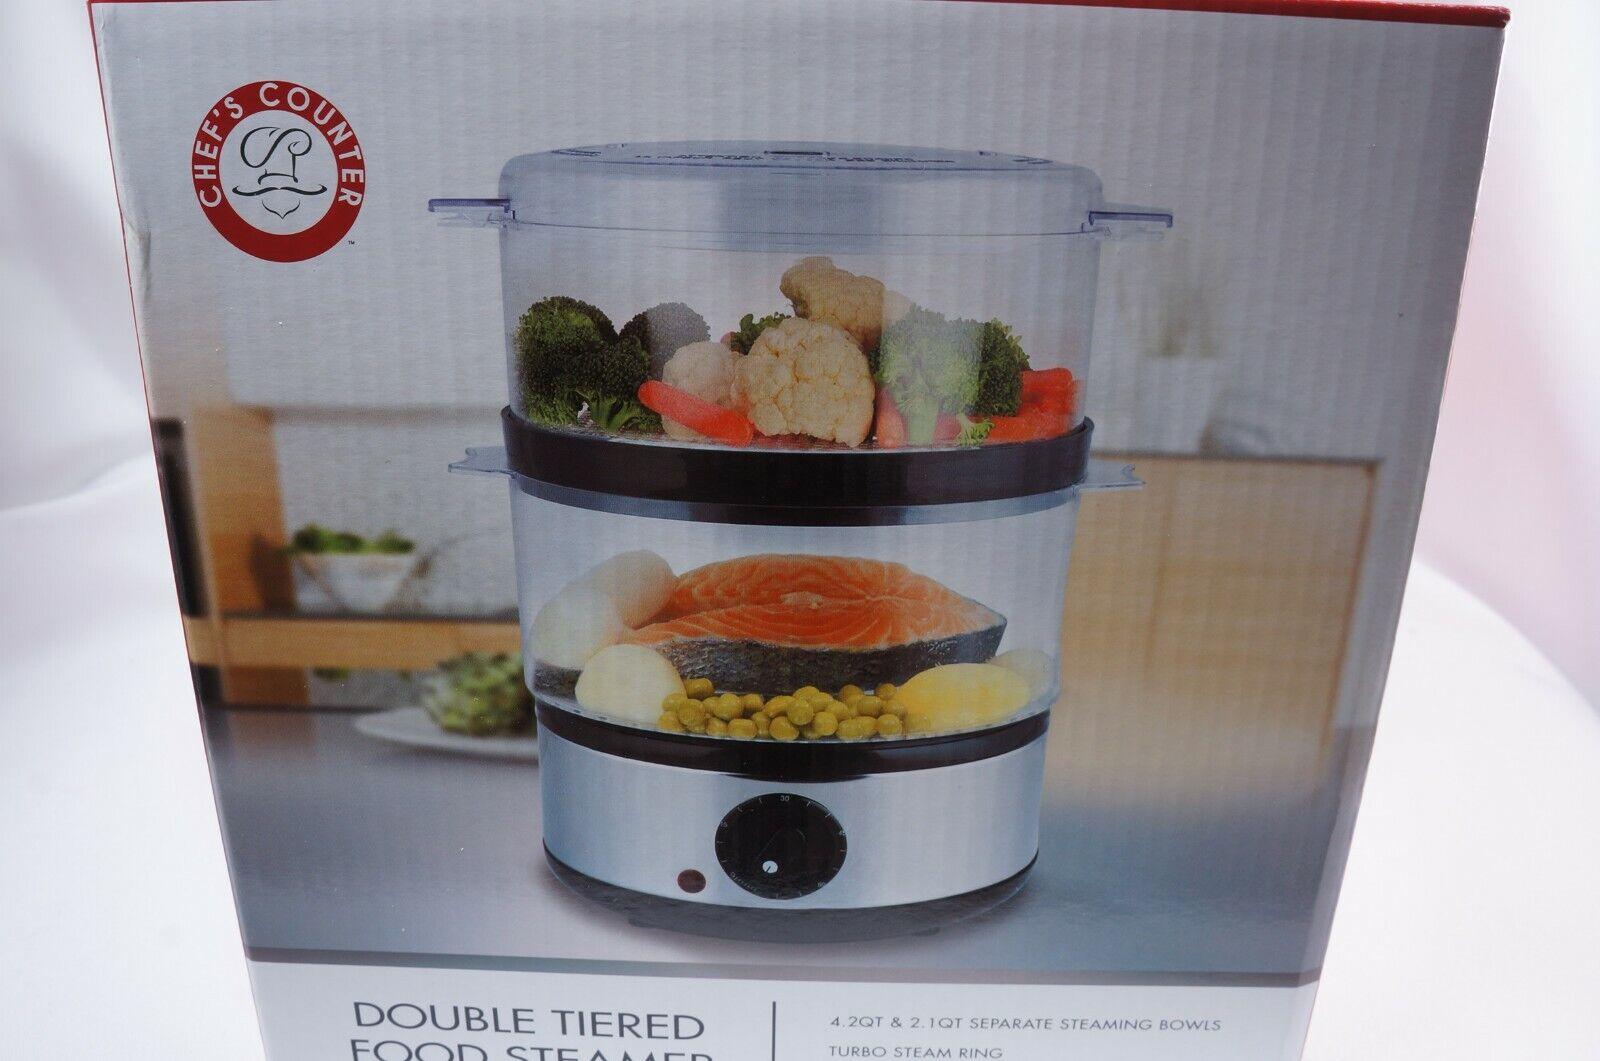 Chef's Counter Double Tiered Food Steamer 4.2 Qt 2.1 Steamin